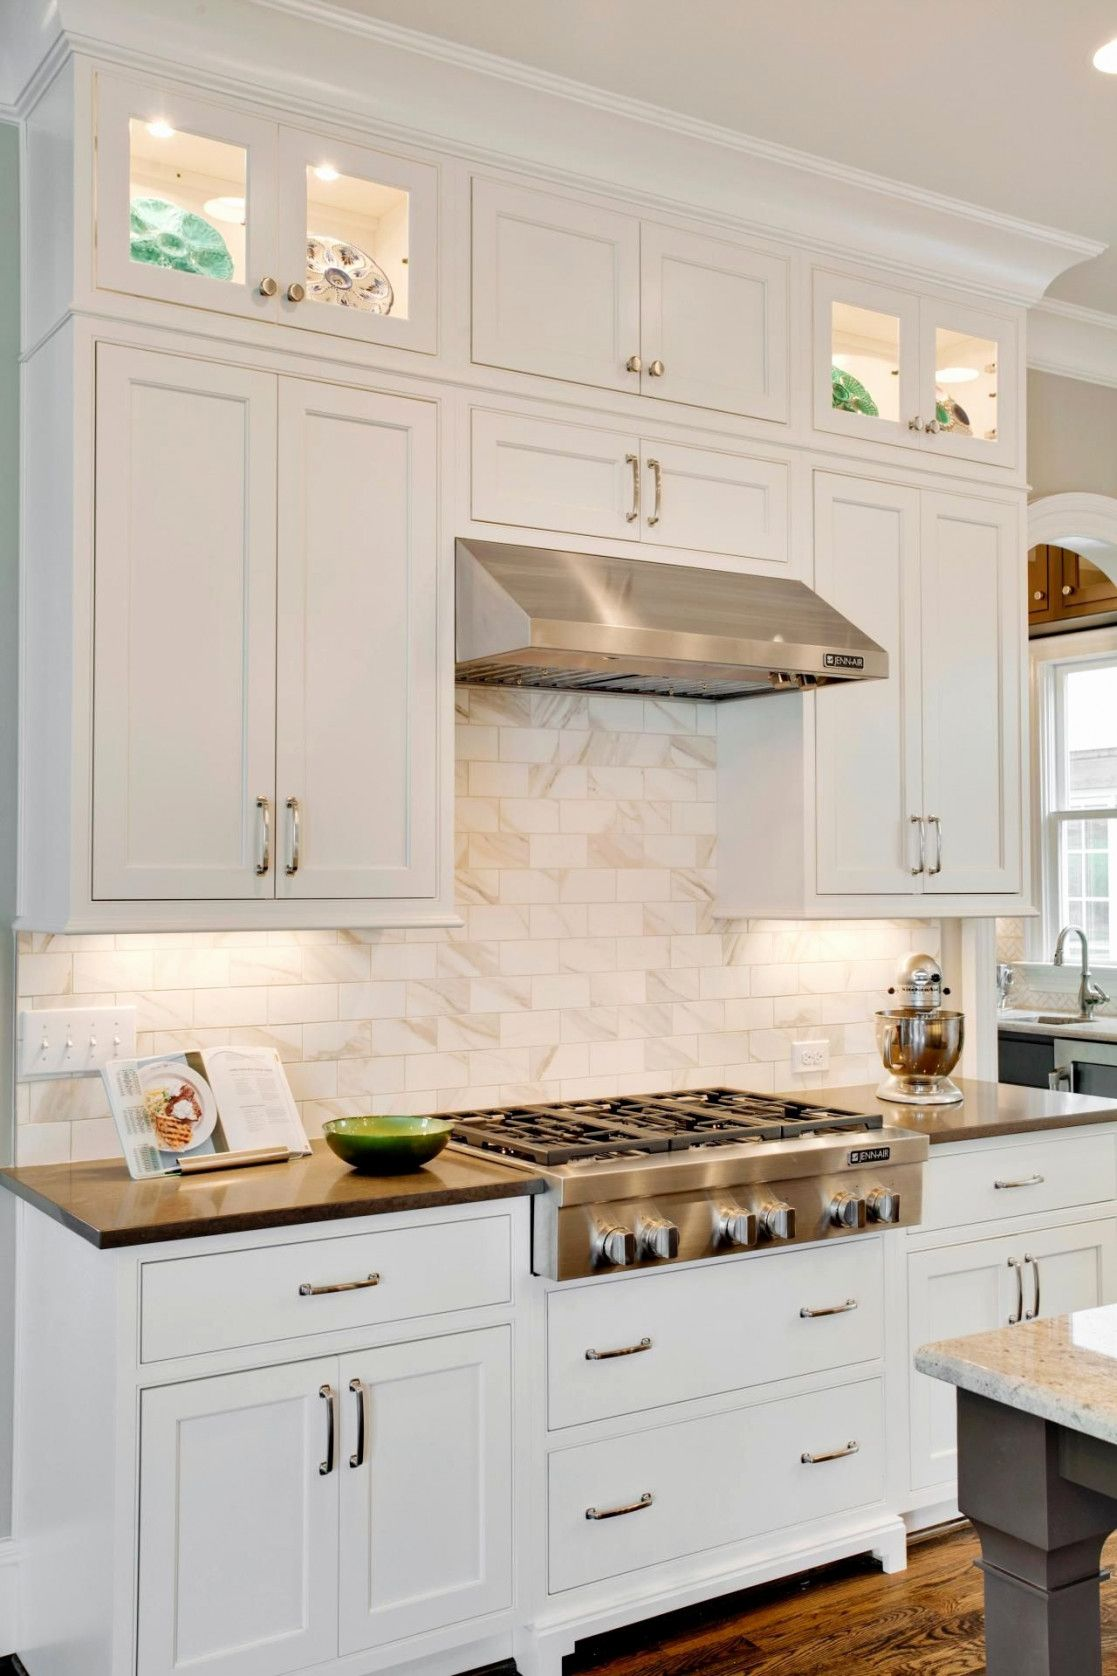 2018 Double Shaker Cabinet Doors Kitchen Cabinets Update Ideas On A Budget Check Mo Shaker Style Kitchen Cabinets White Shaker Kitchen Kitchen Cabinet Styles